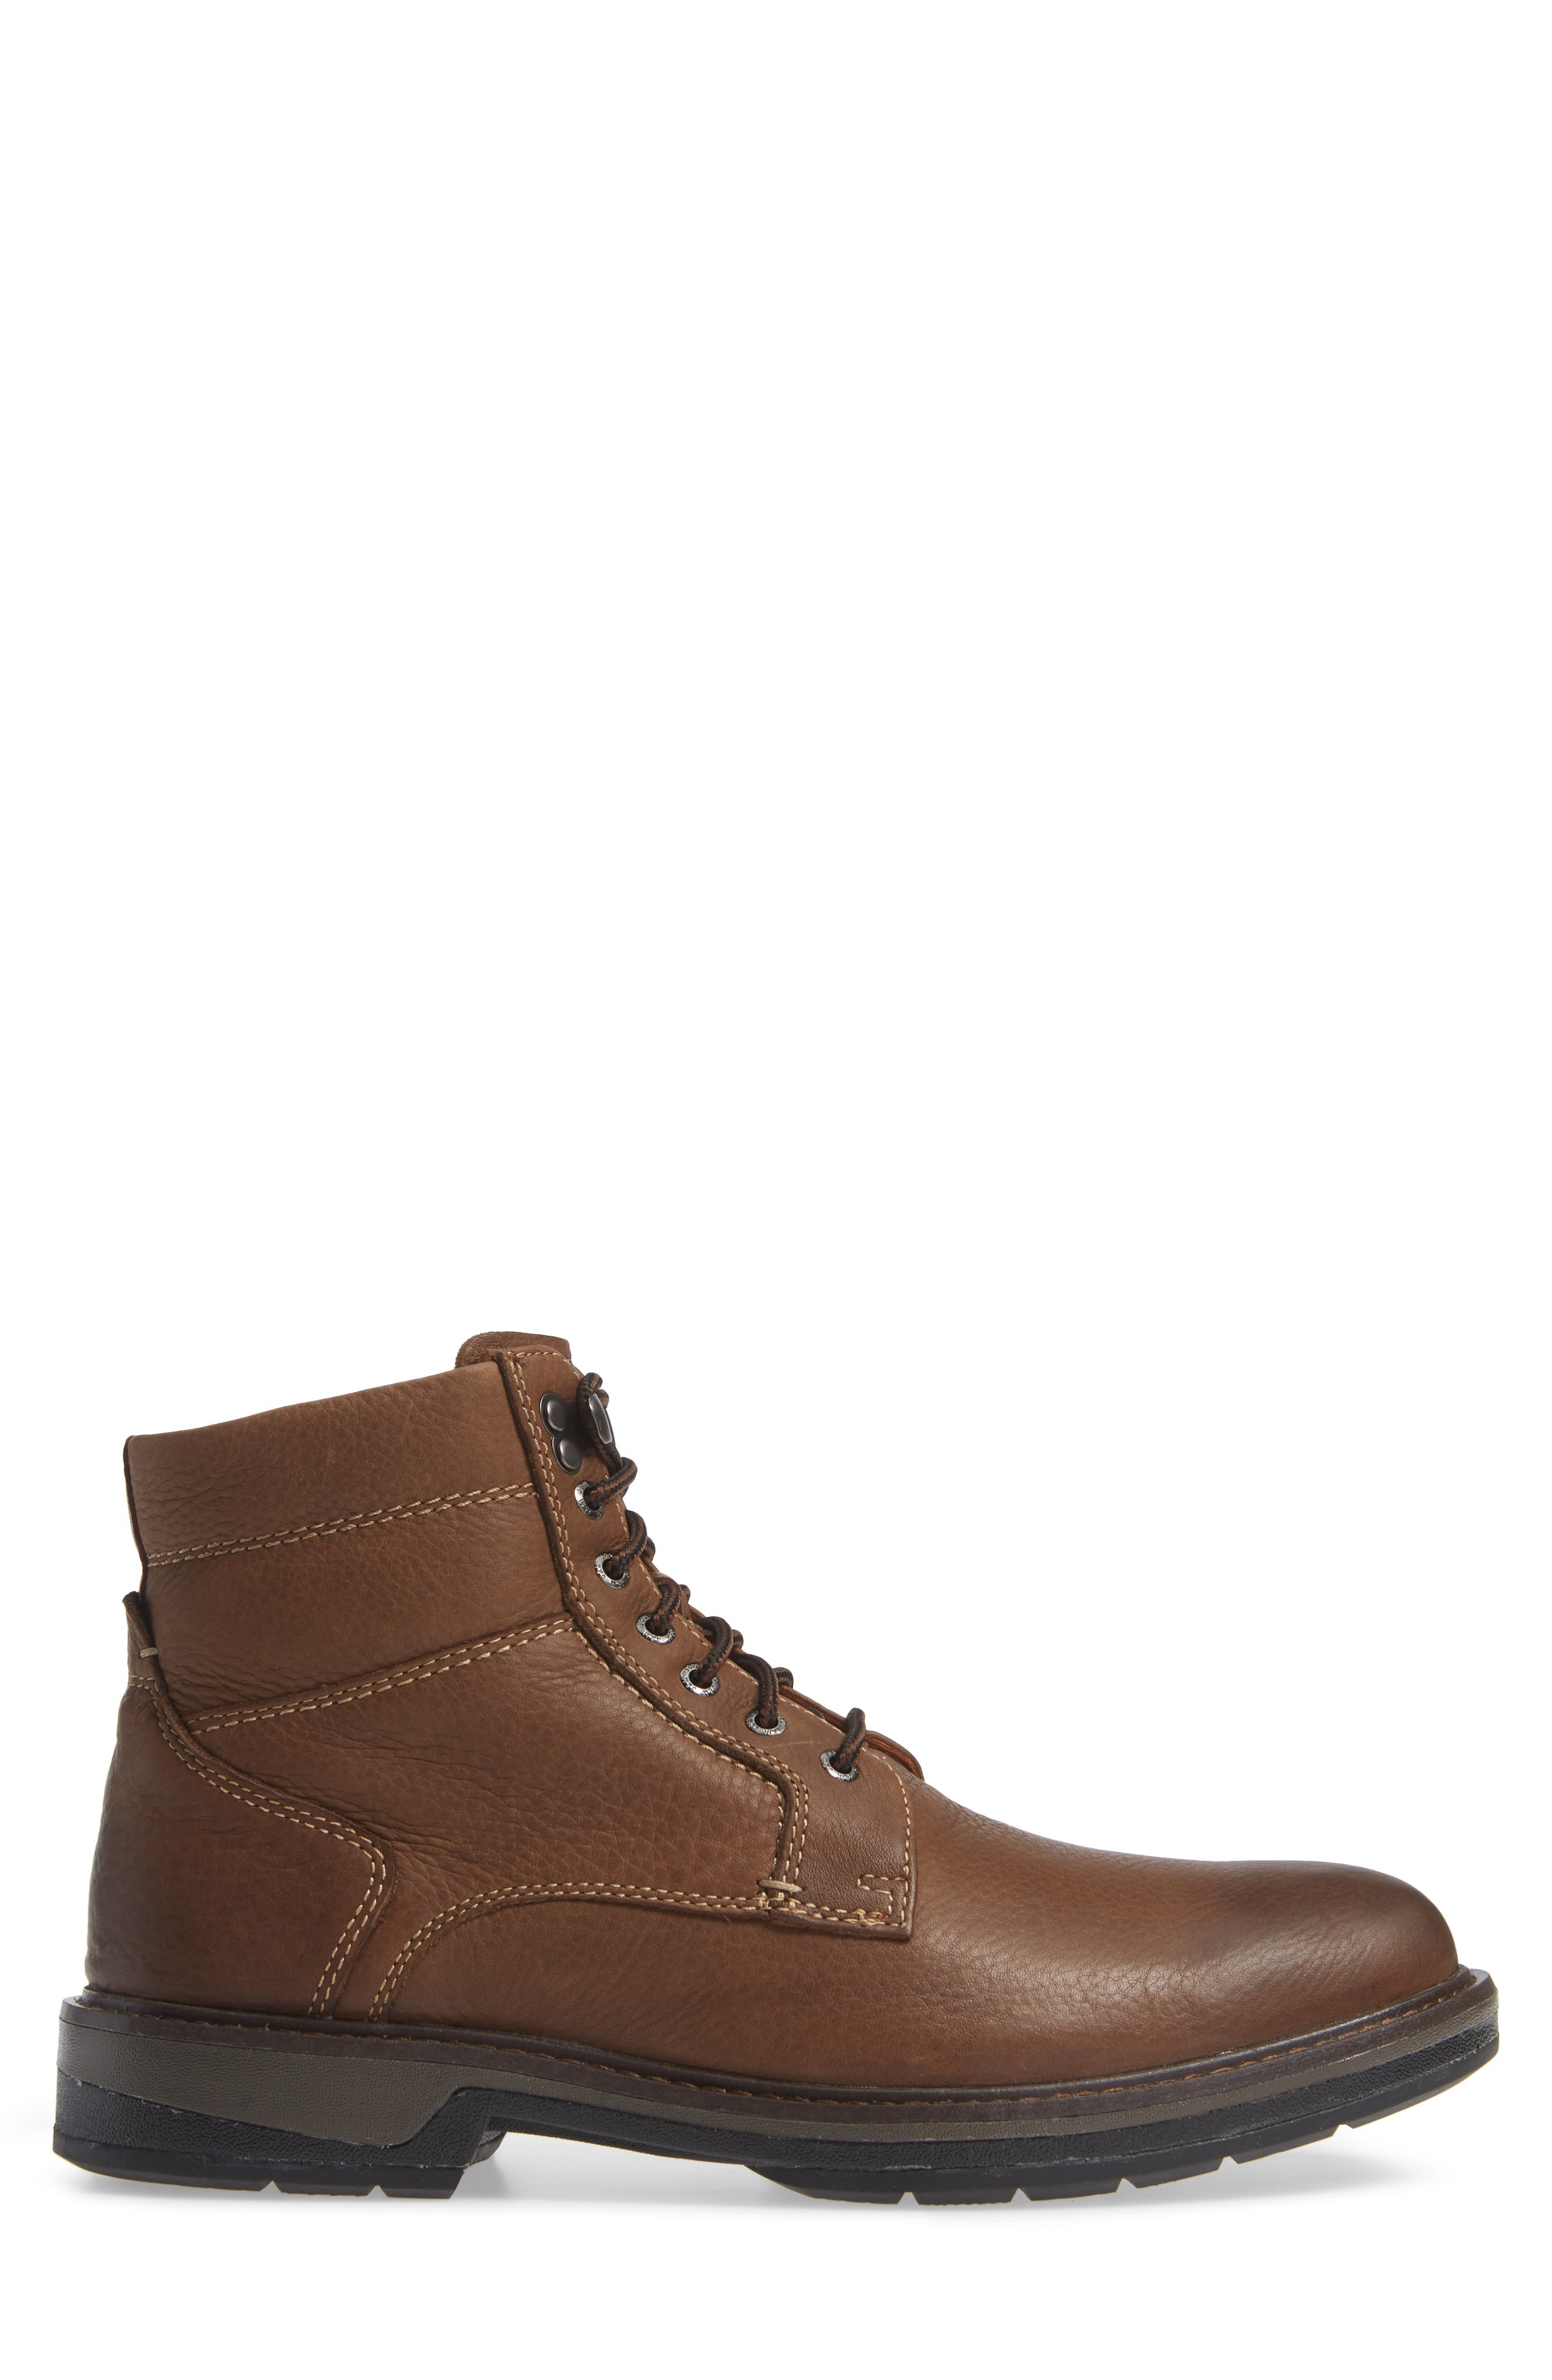 Rutledge Genuine Shearling Lined Waterproof Boot,                             Alternate thumbnail 3, color,                             BROWN OILED LEATHER